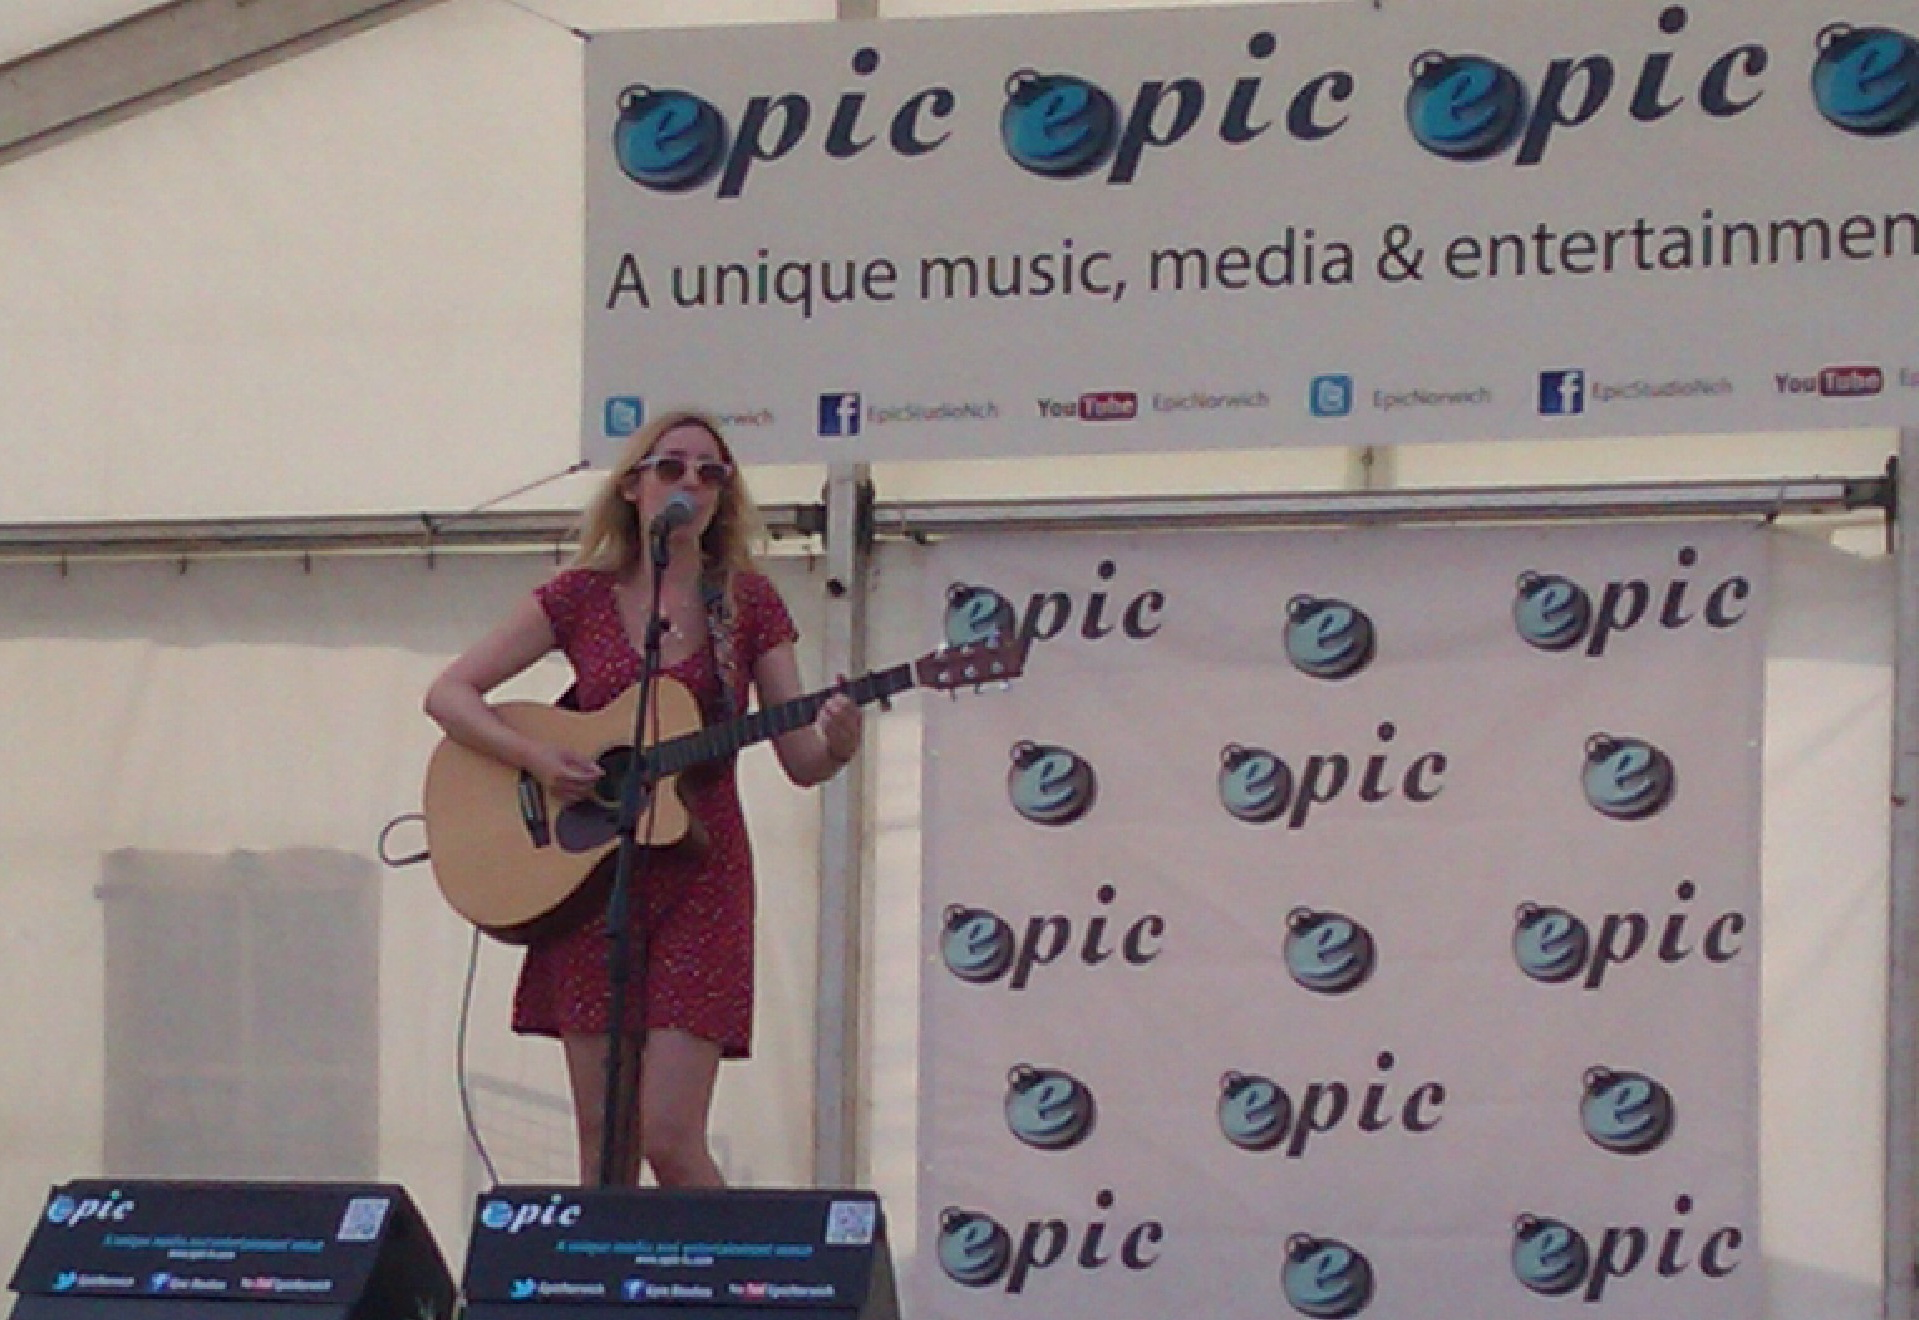 Selis Epic Female Vocals Lisa Redford Above Really Fun Day Singing In The Sunshine At Royal Norfolk Showthanks So Much To Studios For Having Me Play On Stage